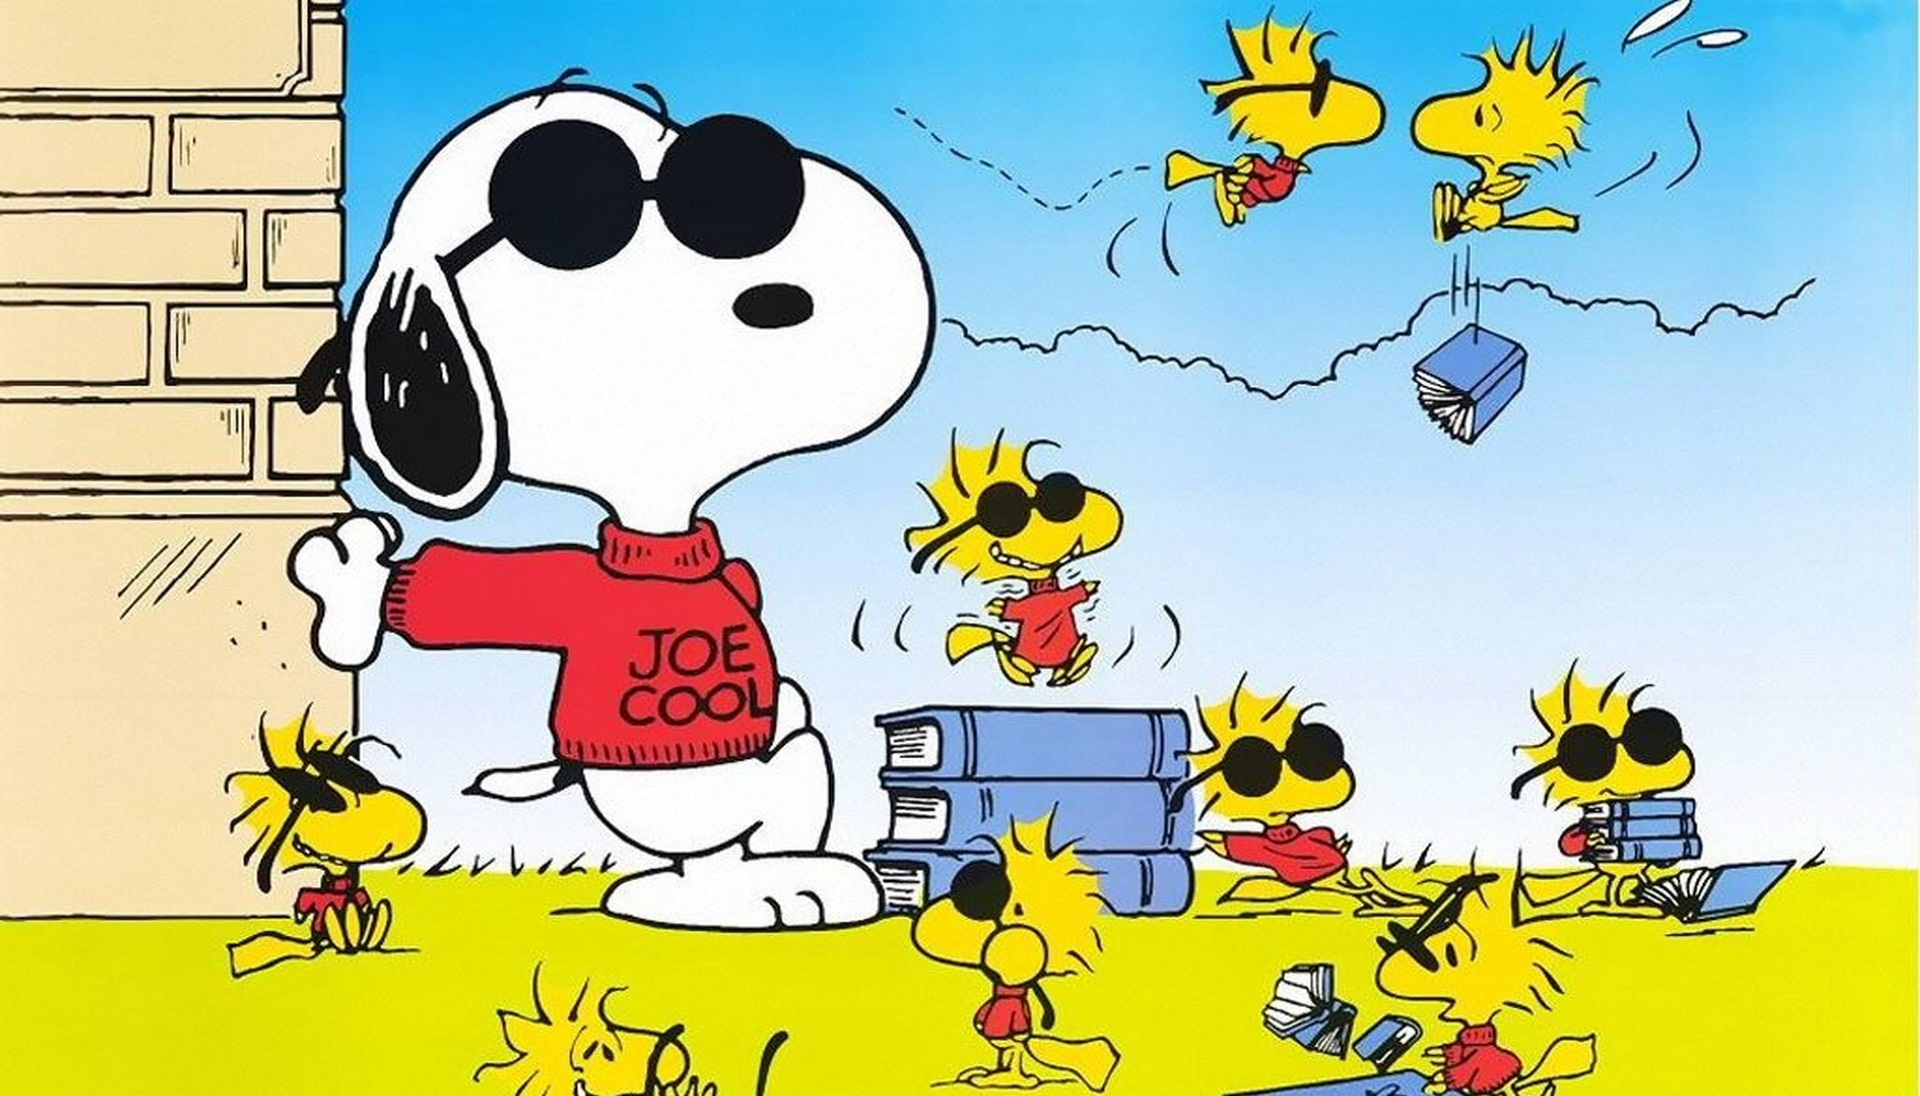 Wallpaper Snoopy Valentine Wallpaper Snoopy Wallpaper Desktop 1920x1096